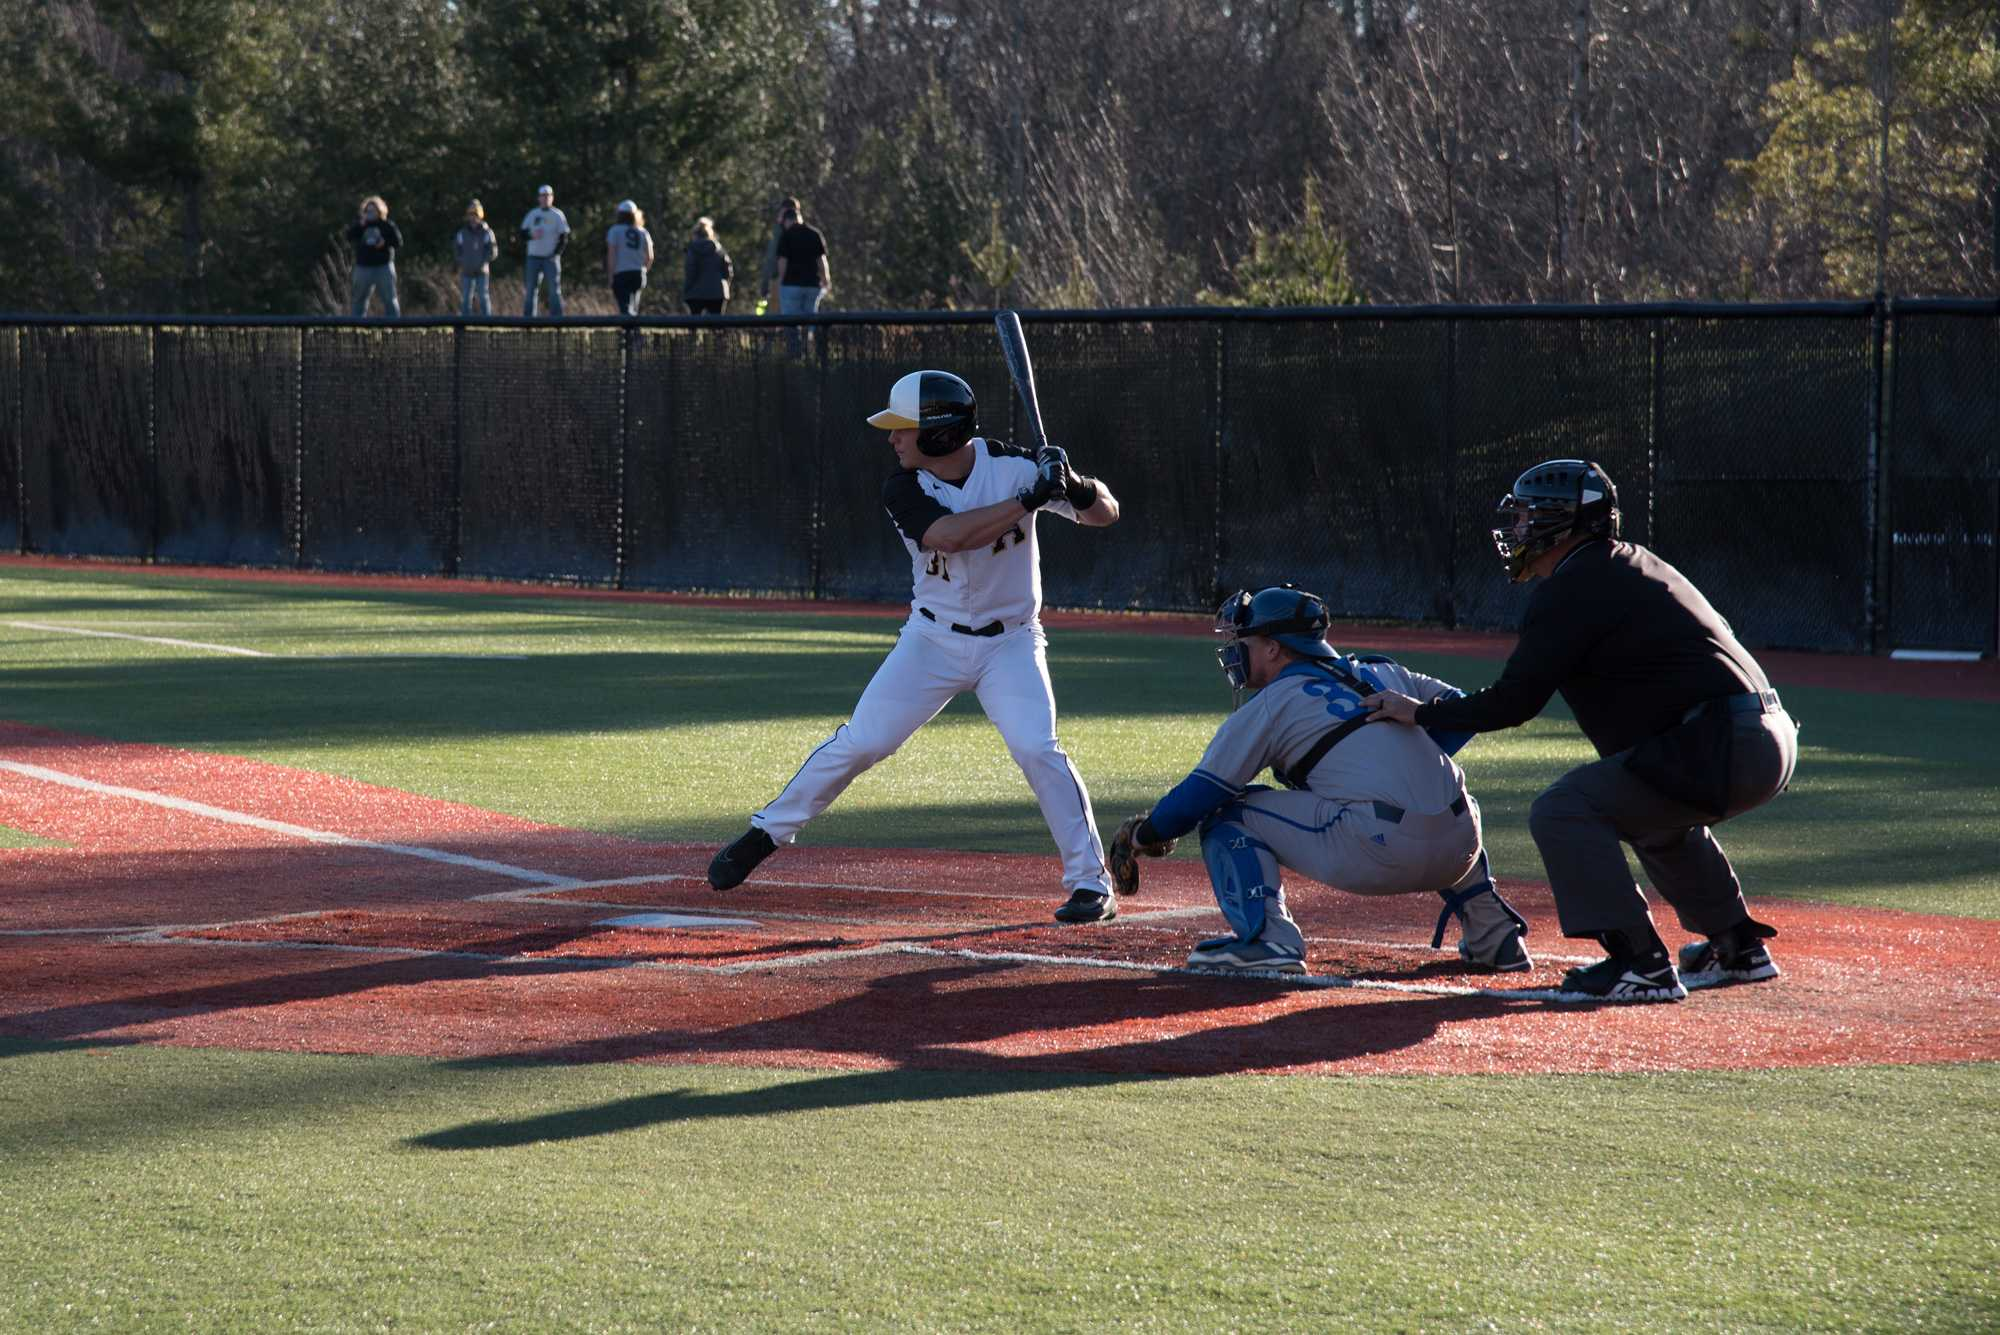 Freshman Caleb Grubbs up to bat during the game against UNC Asheville. The Mountaineers won with the final score being 4-3.